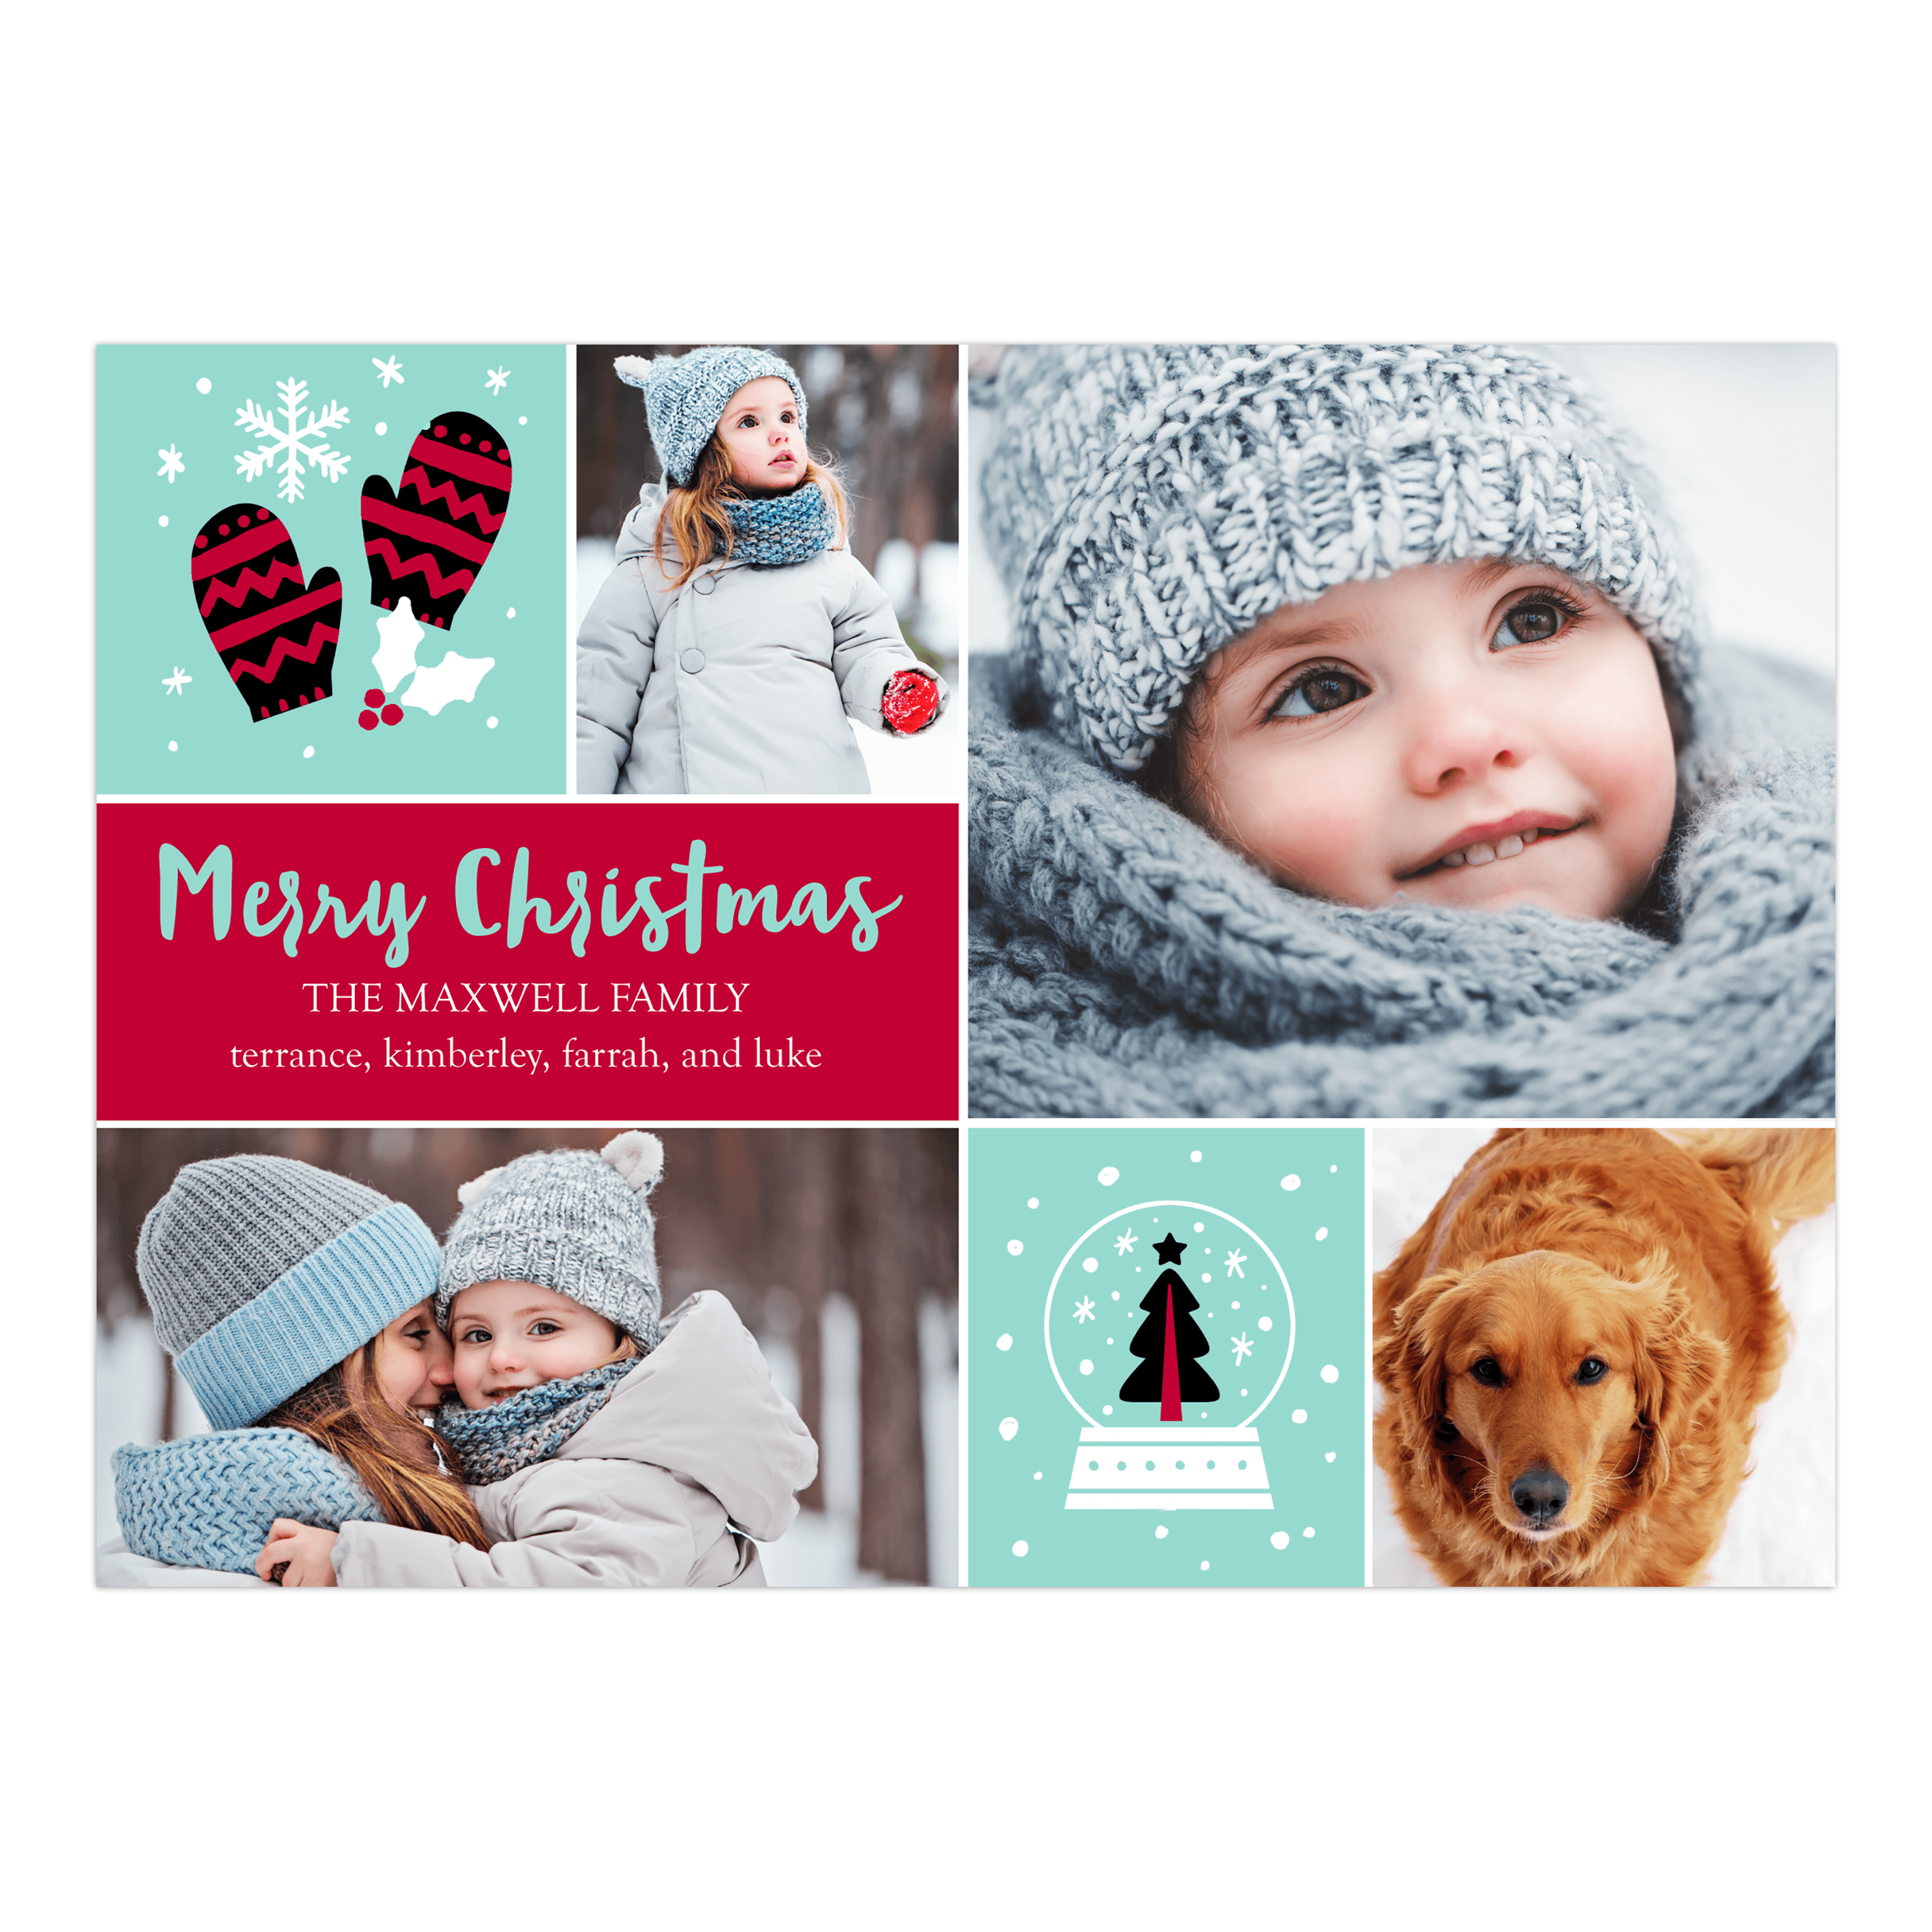 Christmas Icons - 5x7 Personalized Merry Christmas Holiday Card